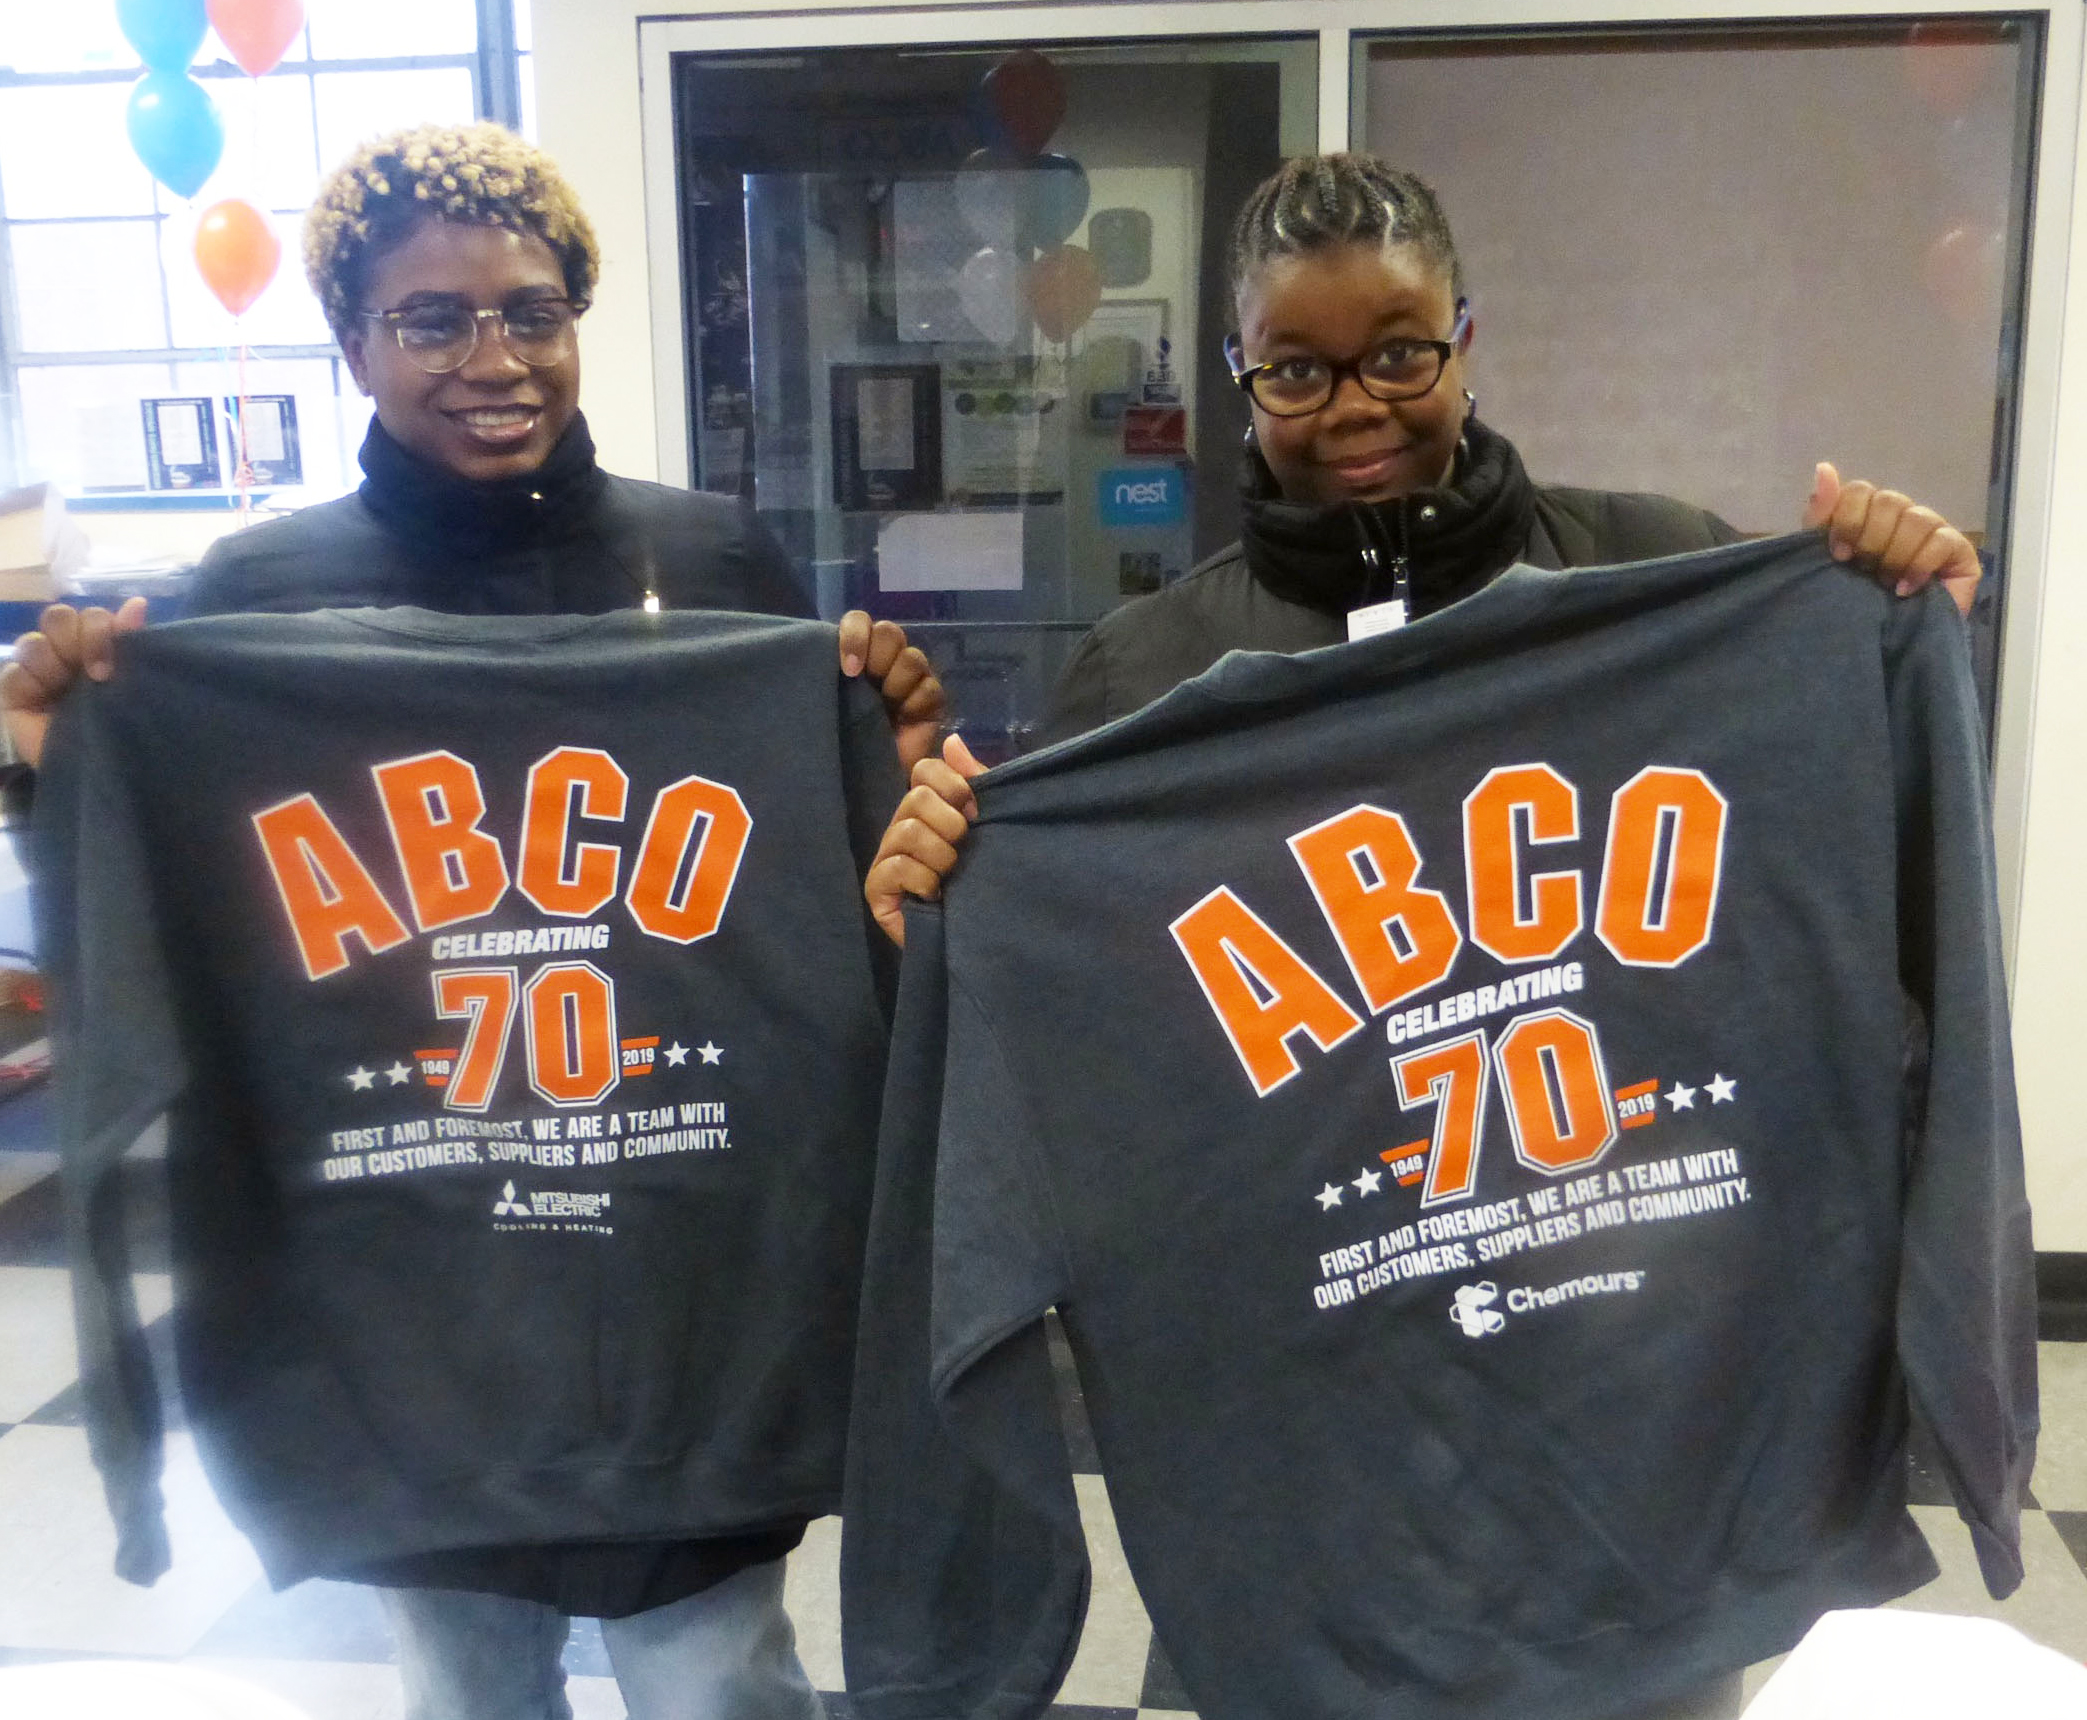 In recognition of our history and our valued customers, ABCO proudly presents Celebrating 70.